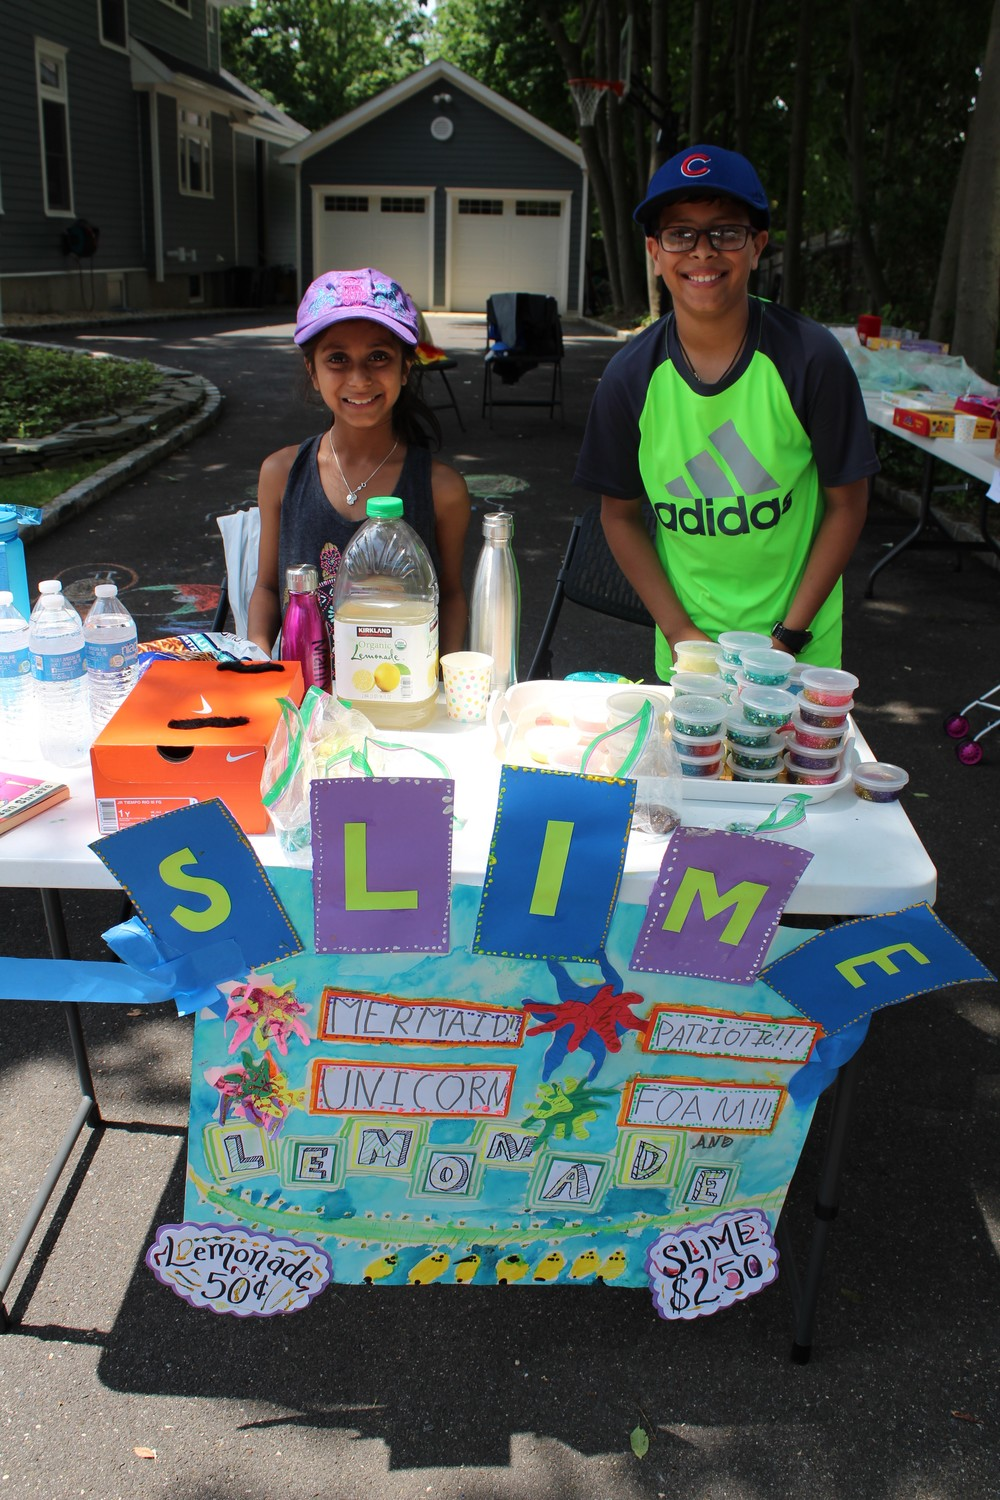 Siblings Mahiya and Aaryan Vira used their slime-making skills to make a little extra allowance at Garage Sale Day.